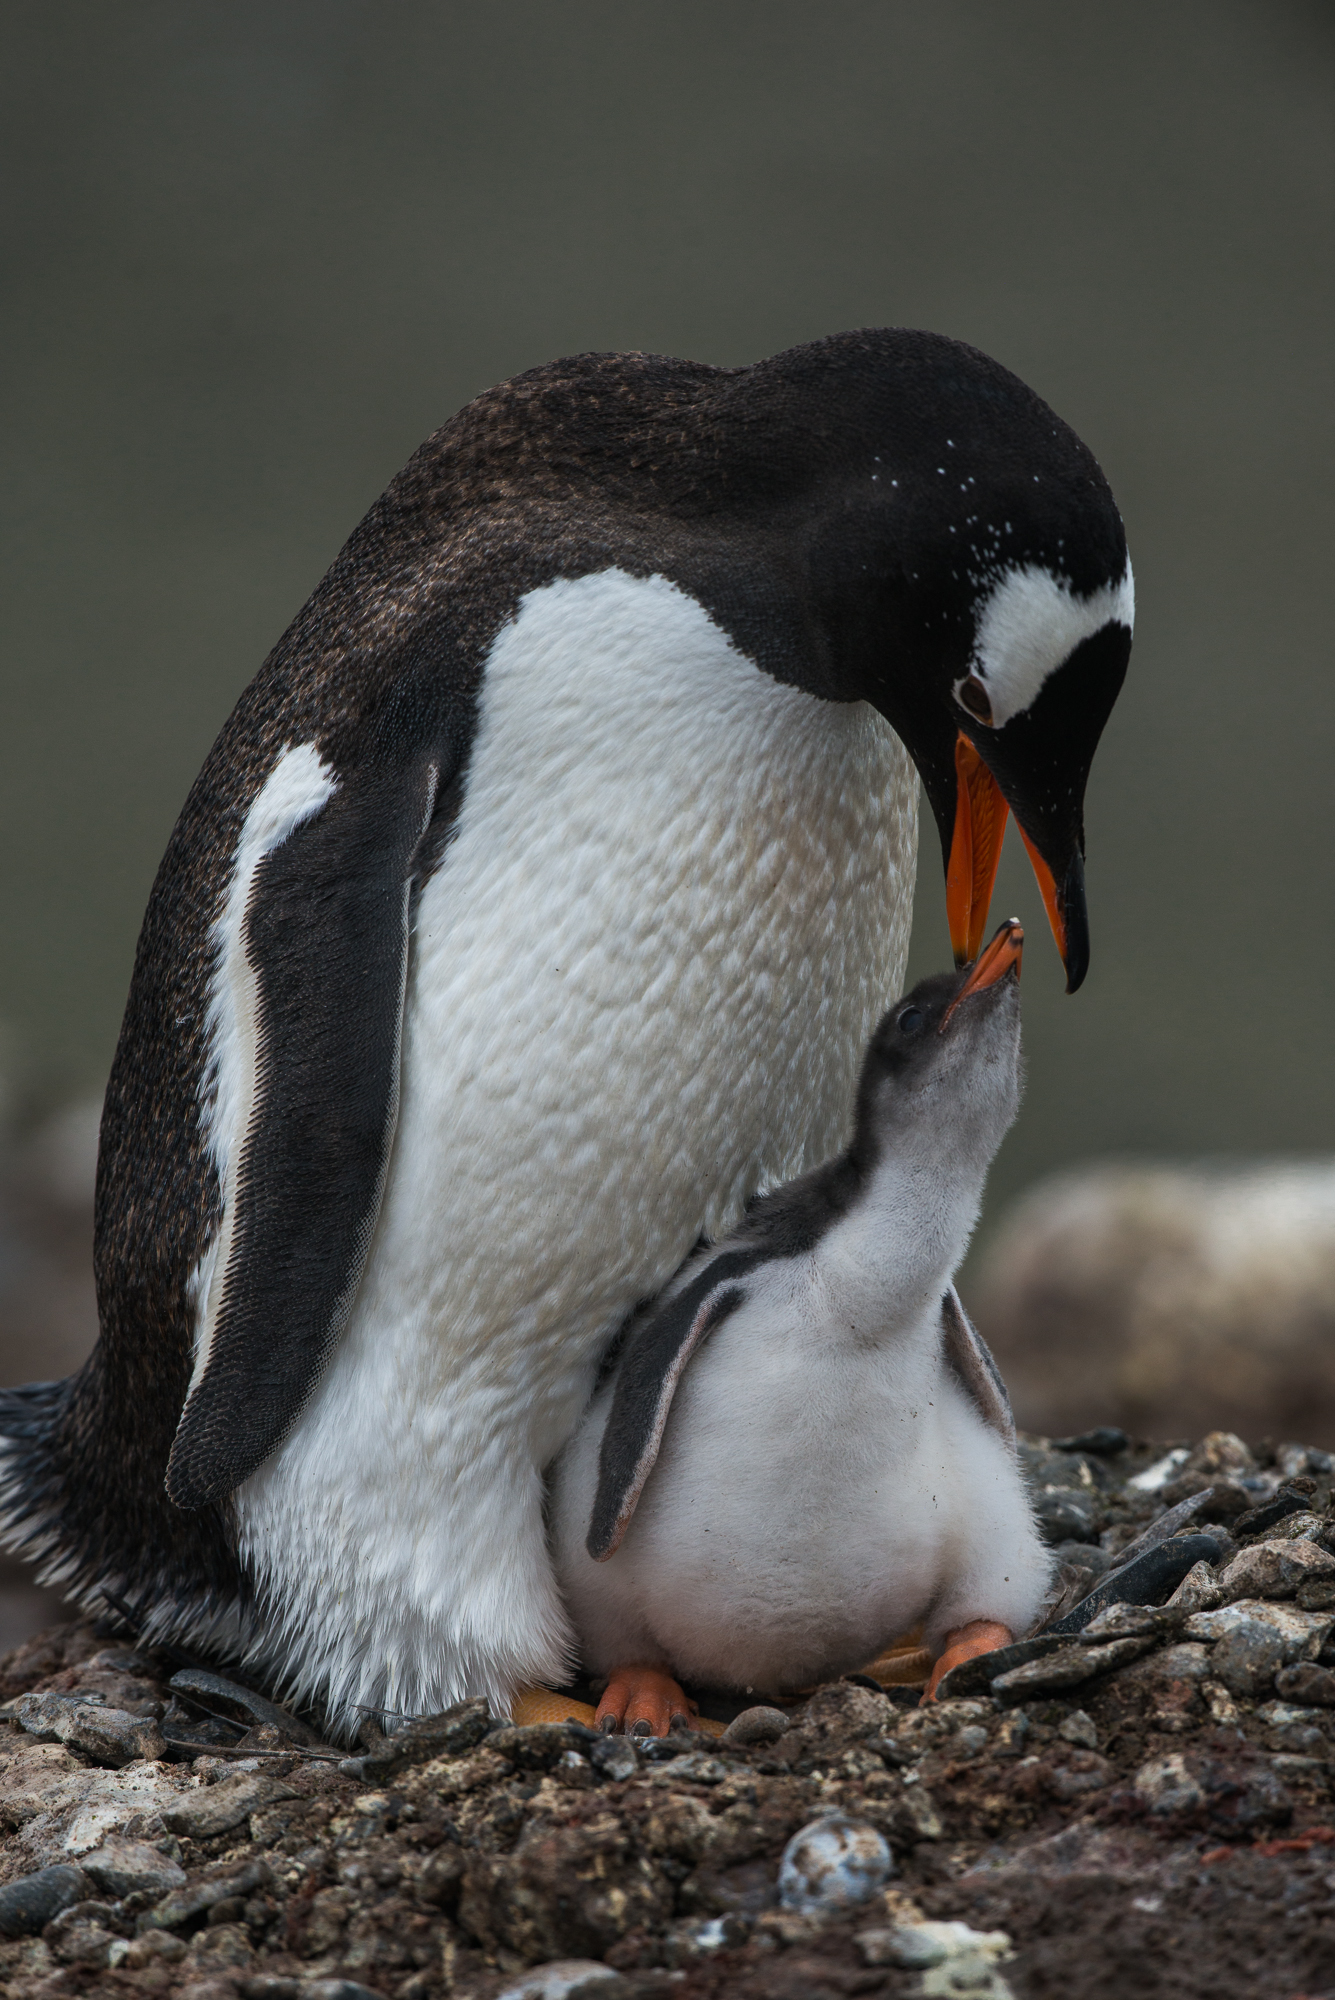 Penguin mom attends to her chick